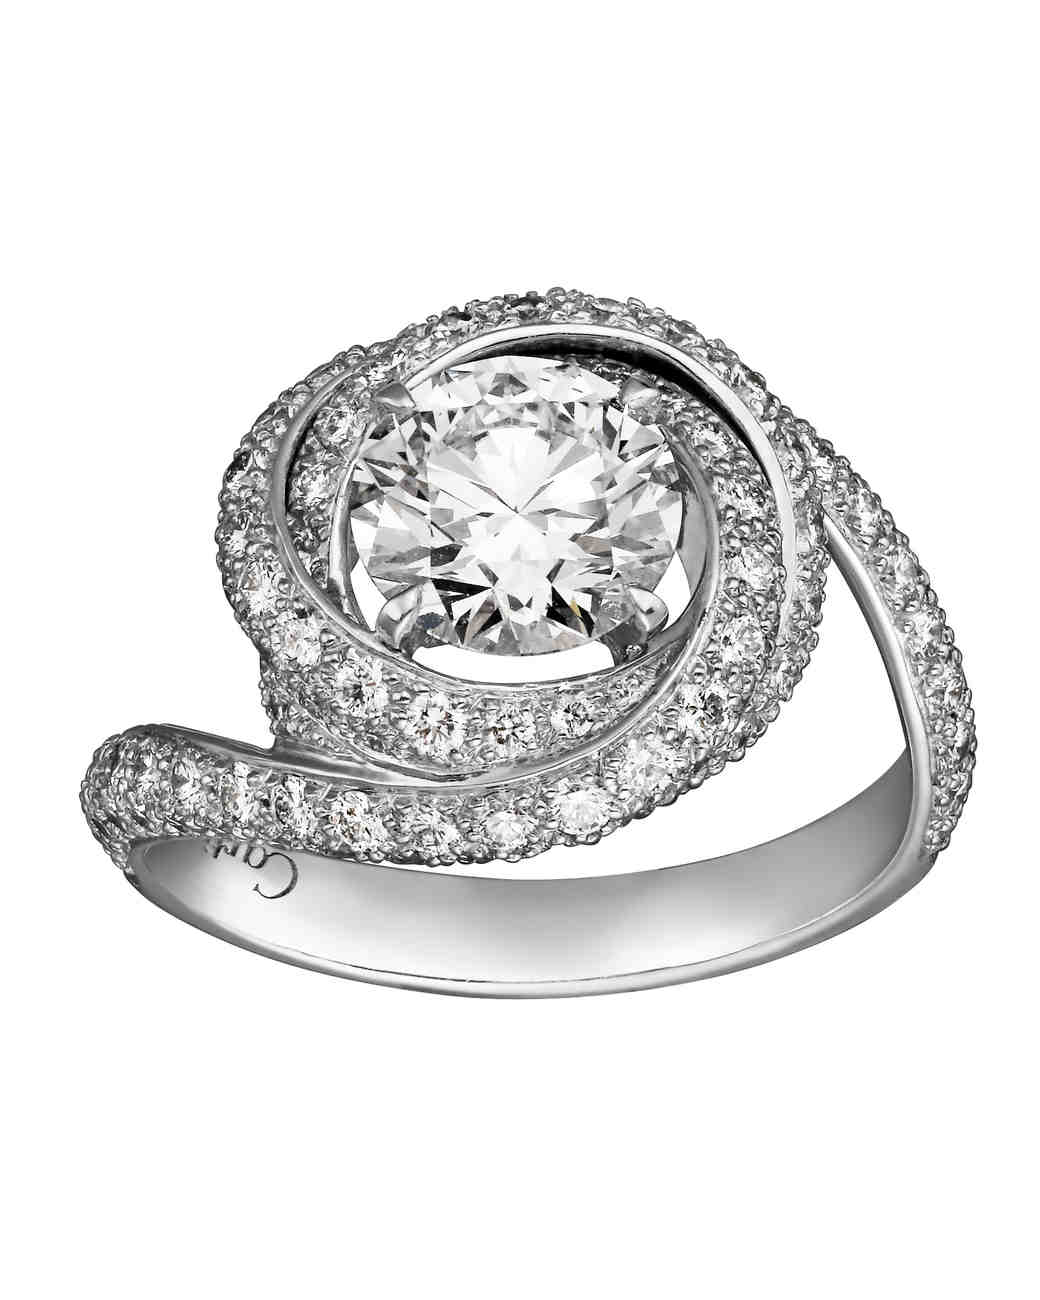 Cartier Vintageinspired Trinity Engagement Ring